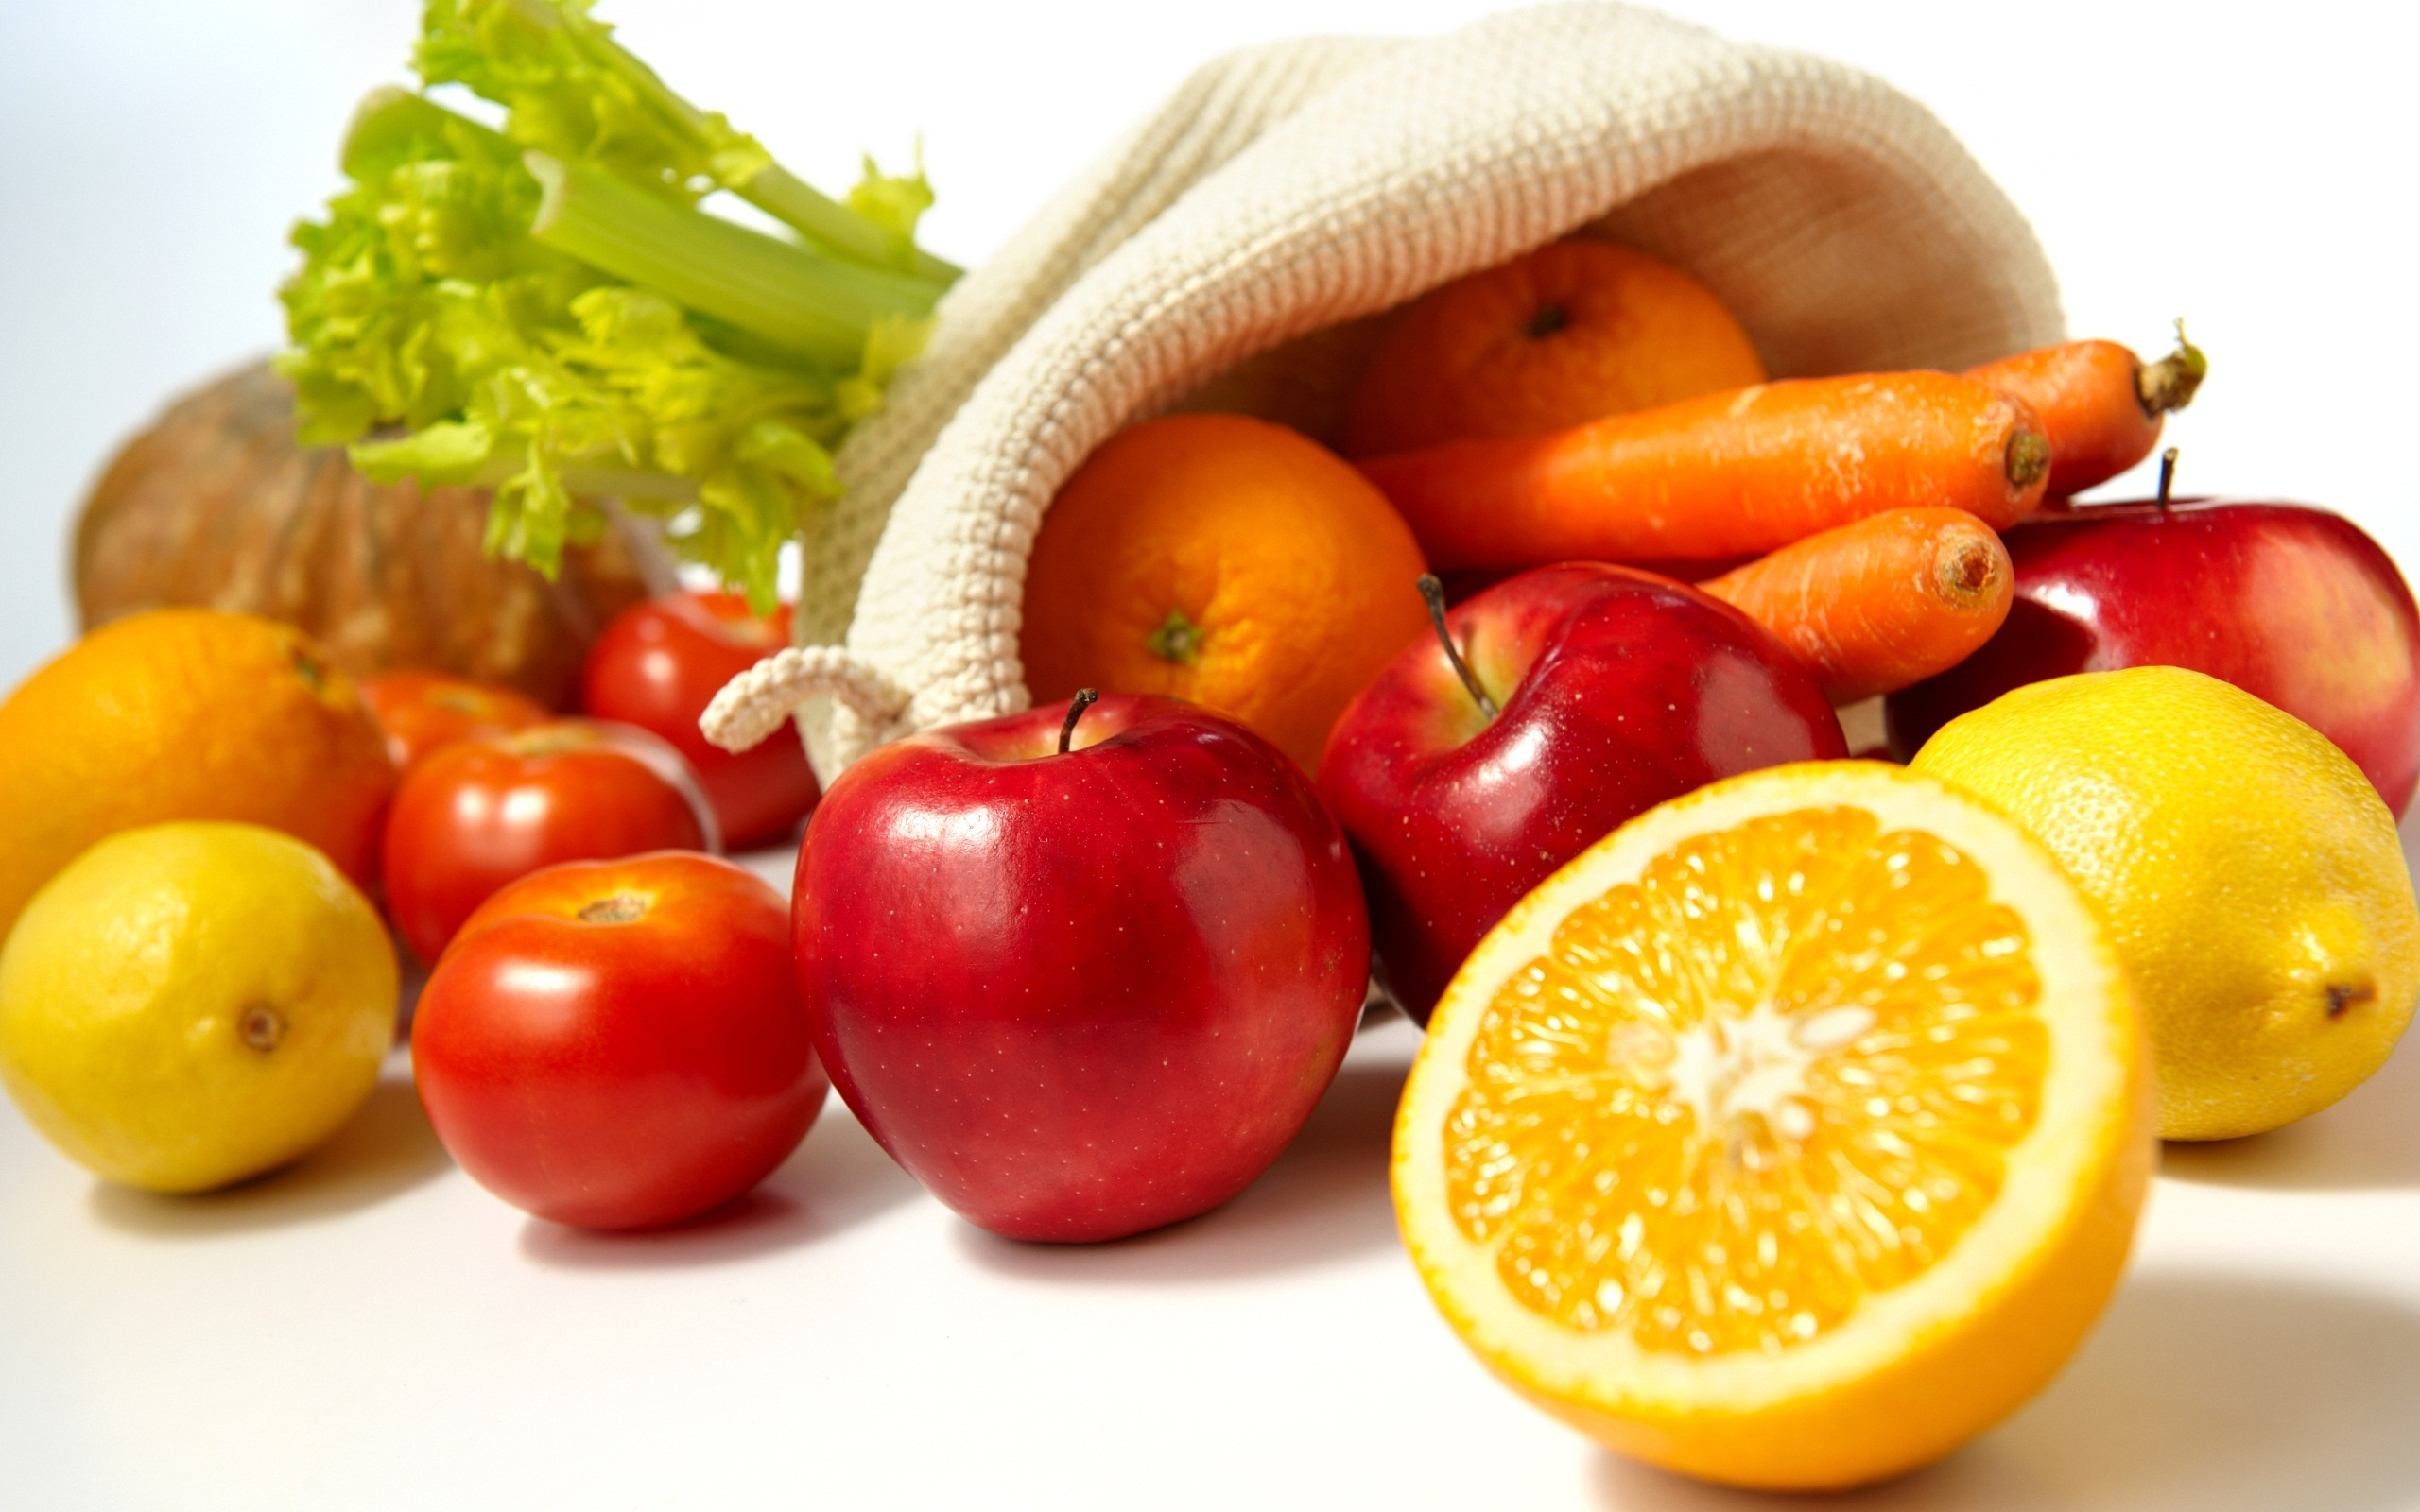 Keep Your Employee Energised With The Healthy Fresh Fruit Choice